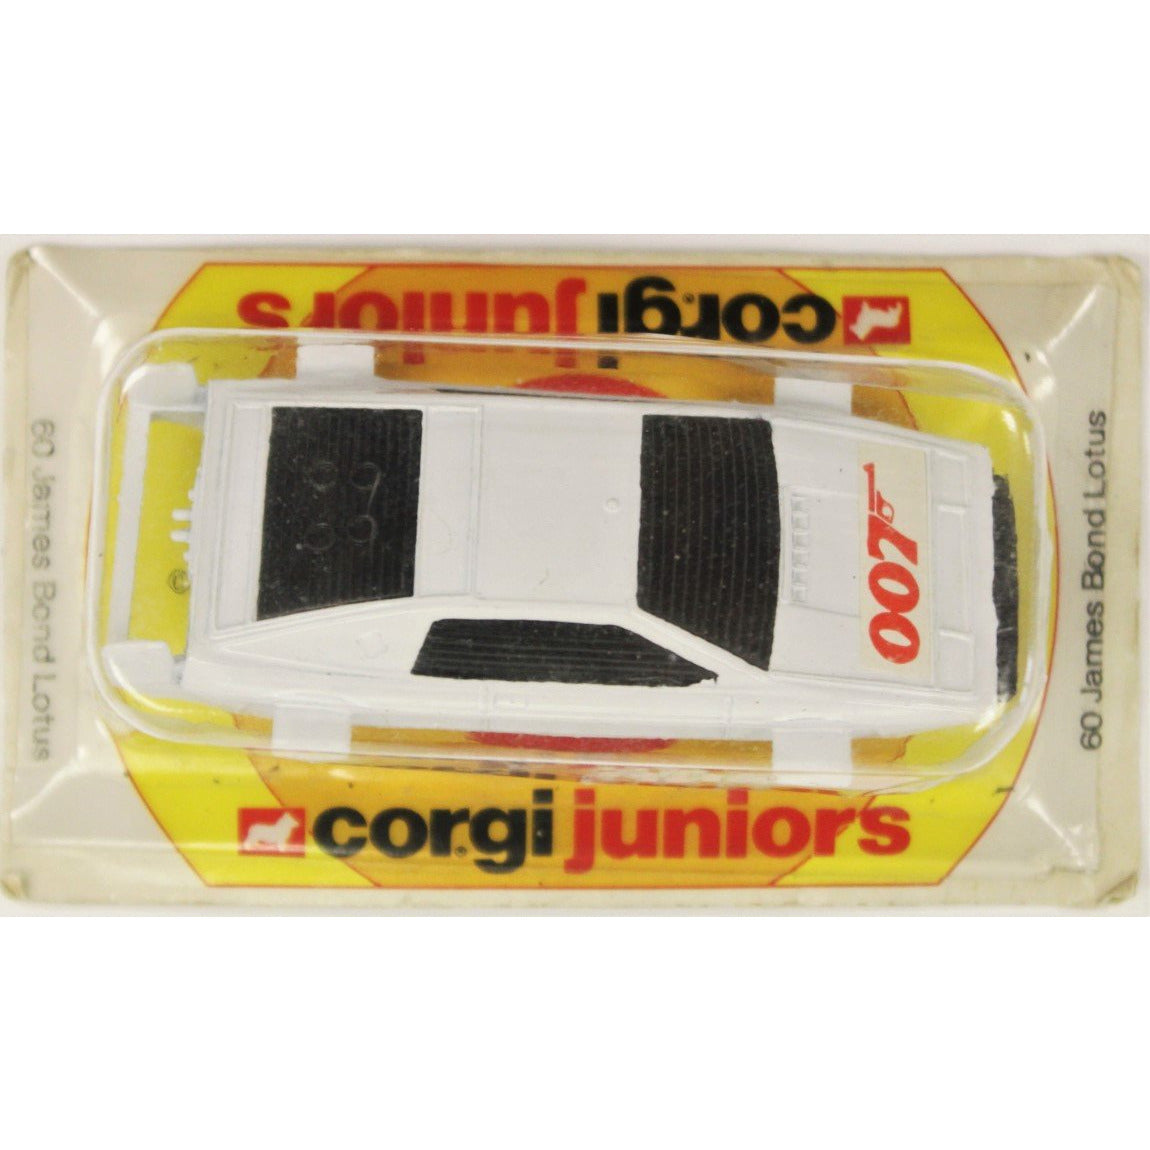 Corgi Juniors James Bond Lotus